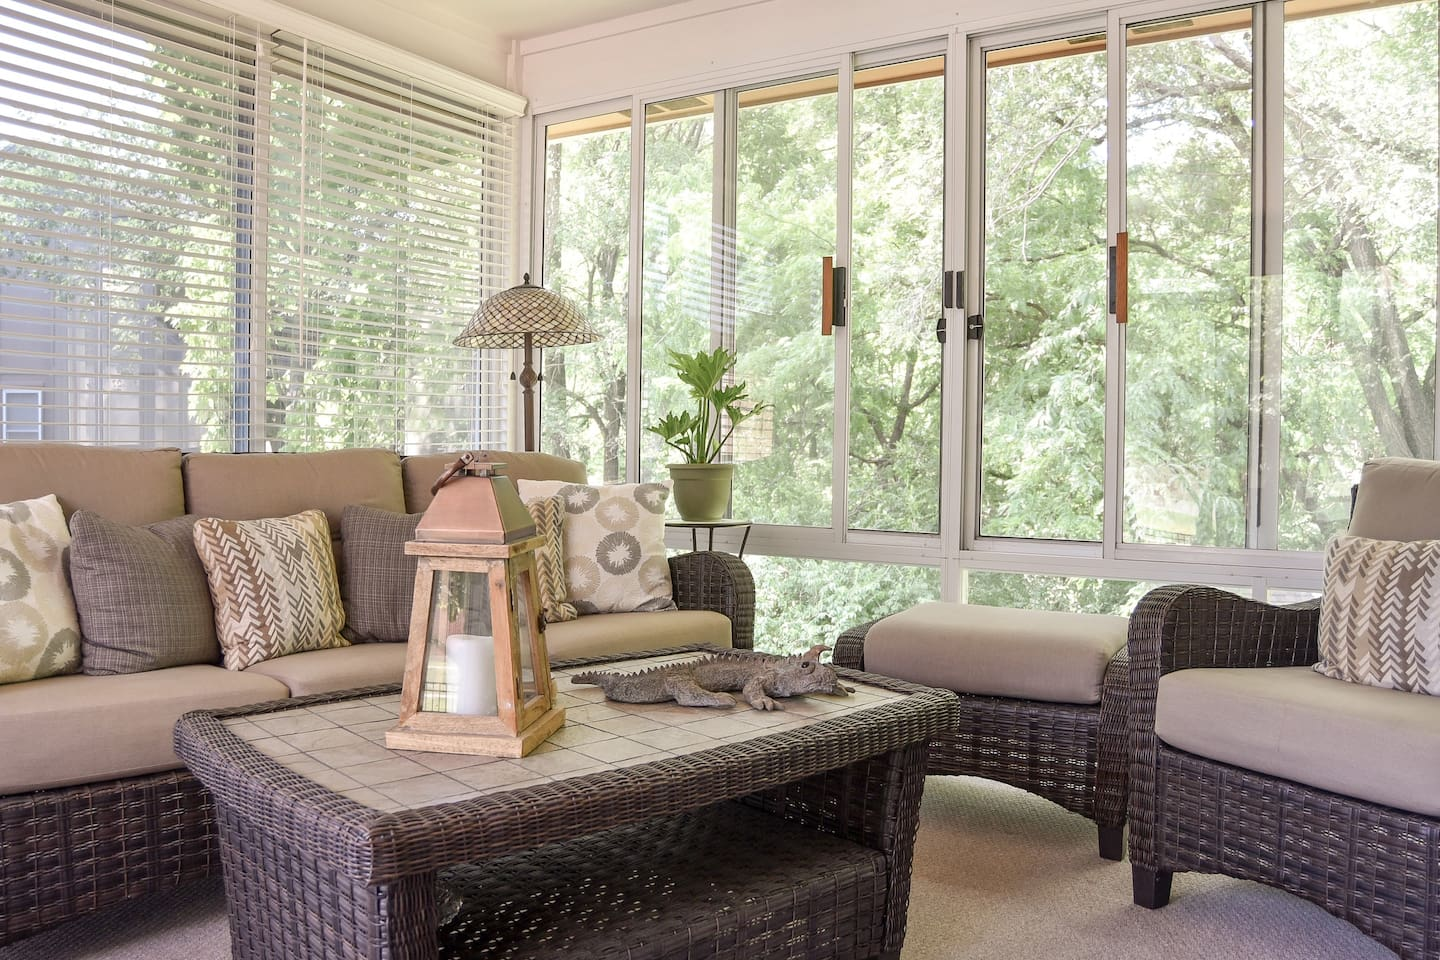 Enjoy your morning coffee or an evening glass of wine in our sunroom.